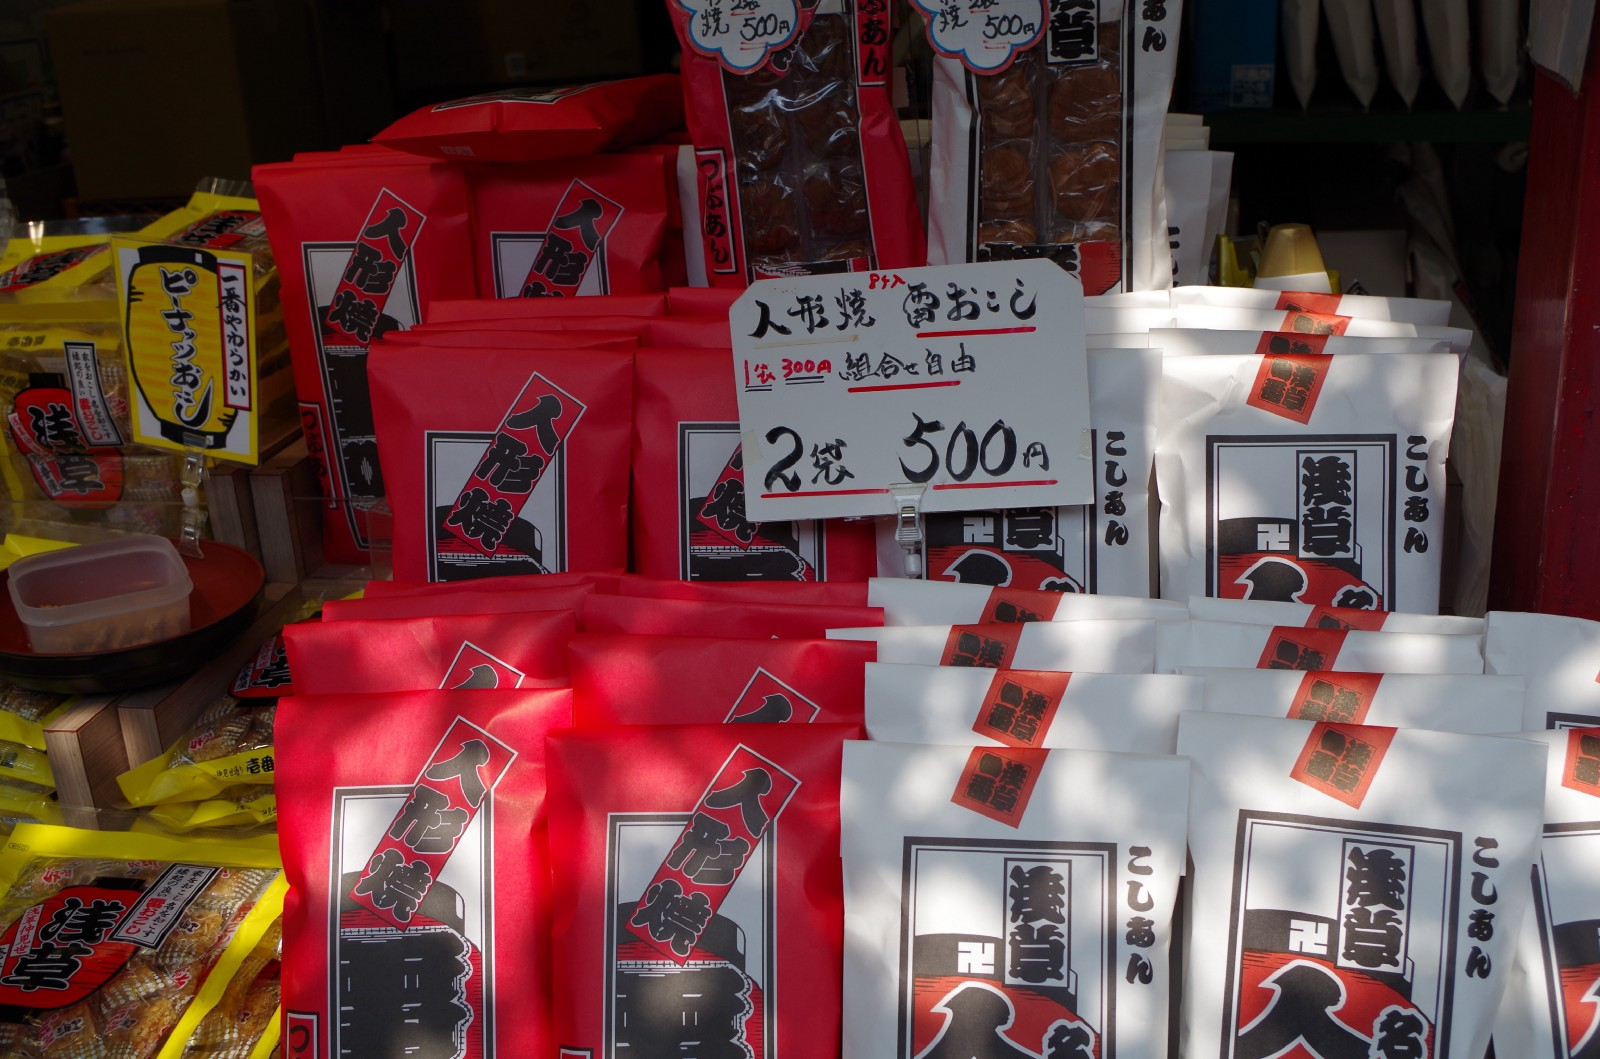 Traditional souvenirs sold at Asakusa